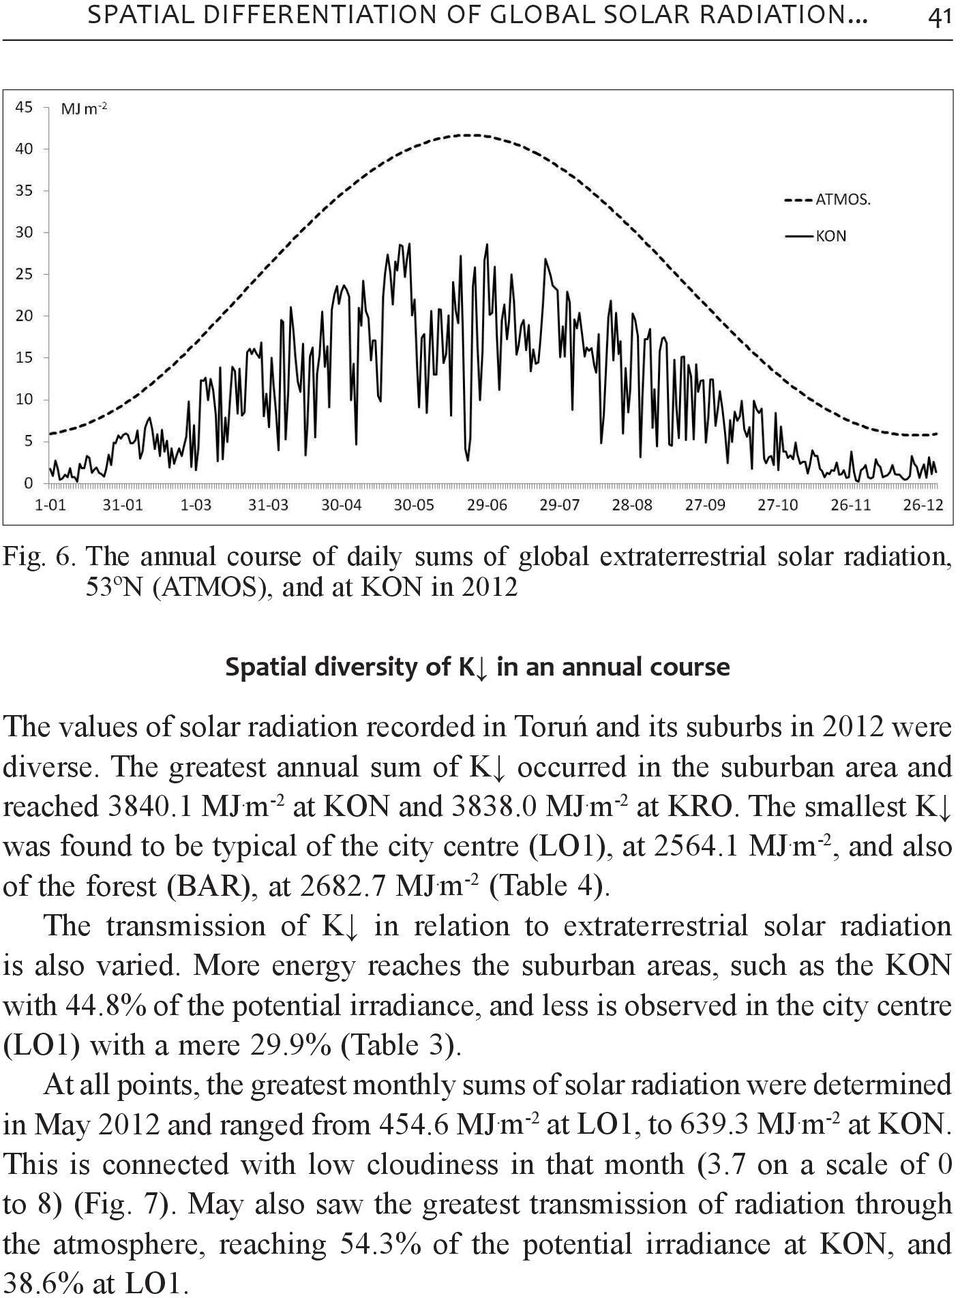 The annual course of daily sums of global extraterrestrial solar radiation, 53ºN (ATMOS), and at KON in 2012.